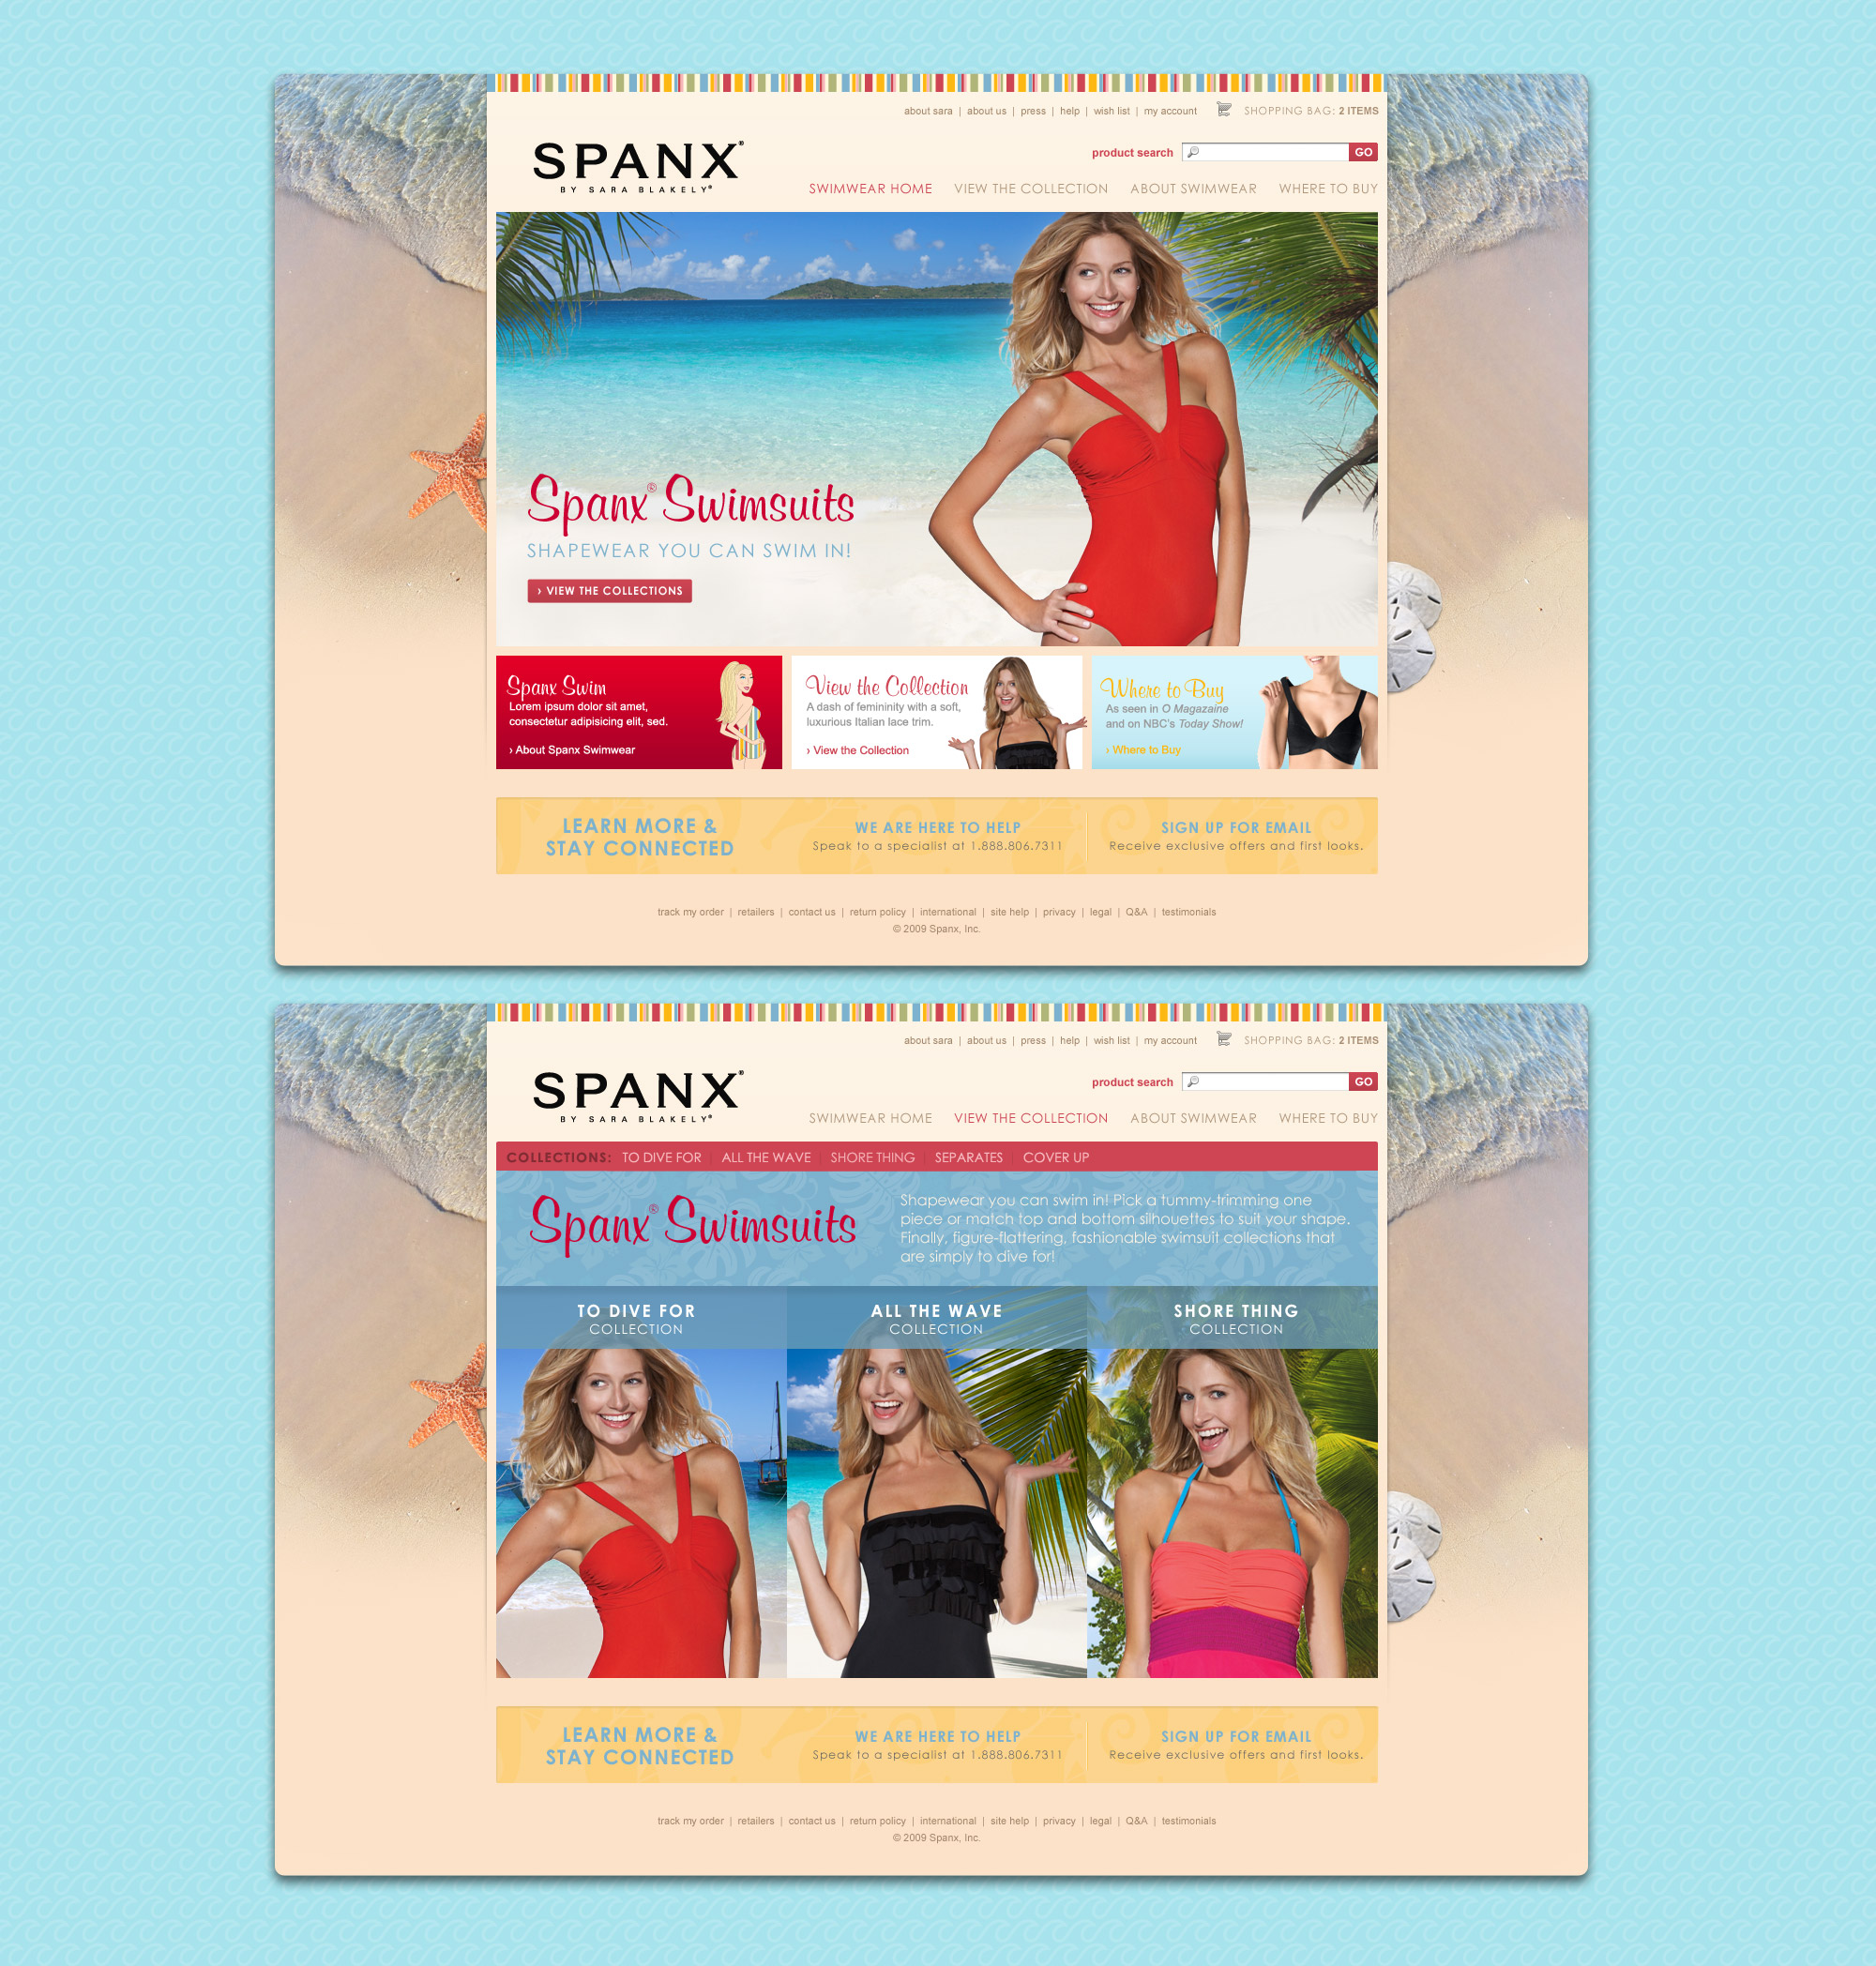 Spanx micro-site pages